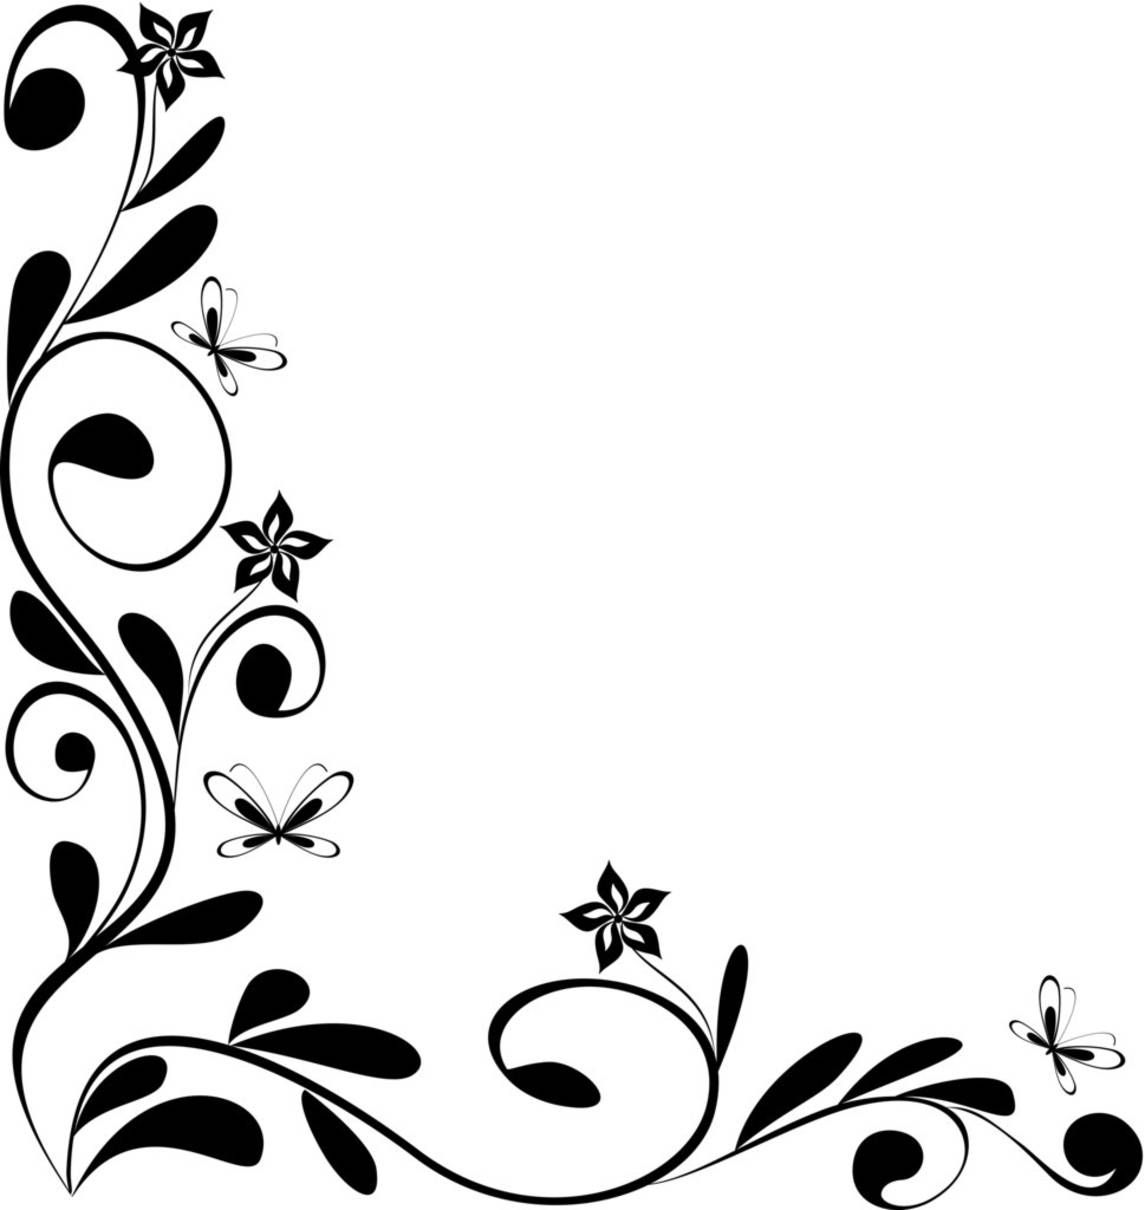 Floral border clipart black and white svg transparent library Black and White Floral Corner | drawings | Page borders design ... svg transparent library